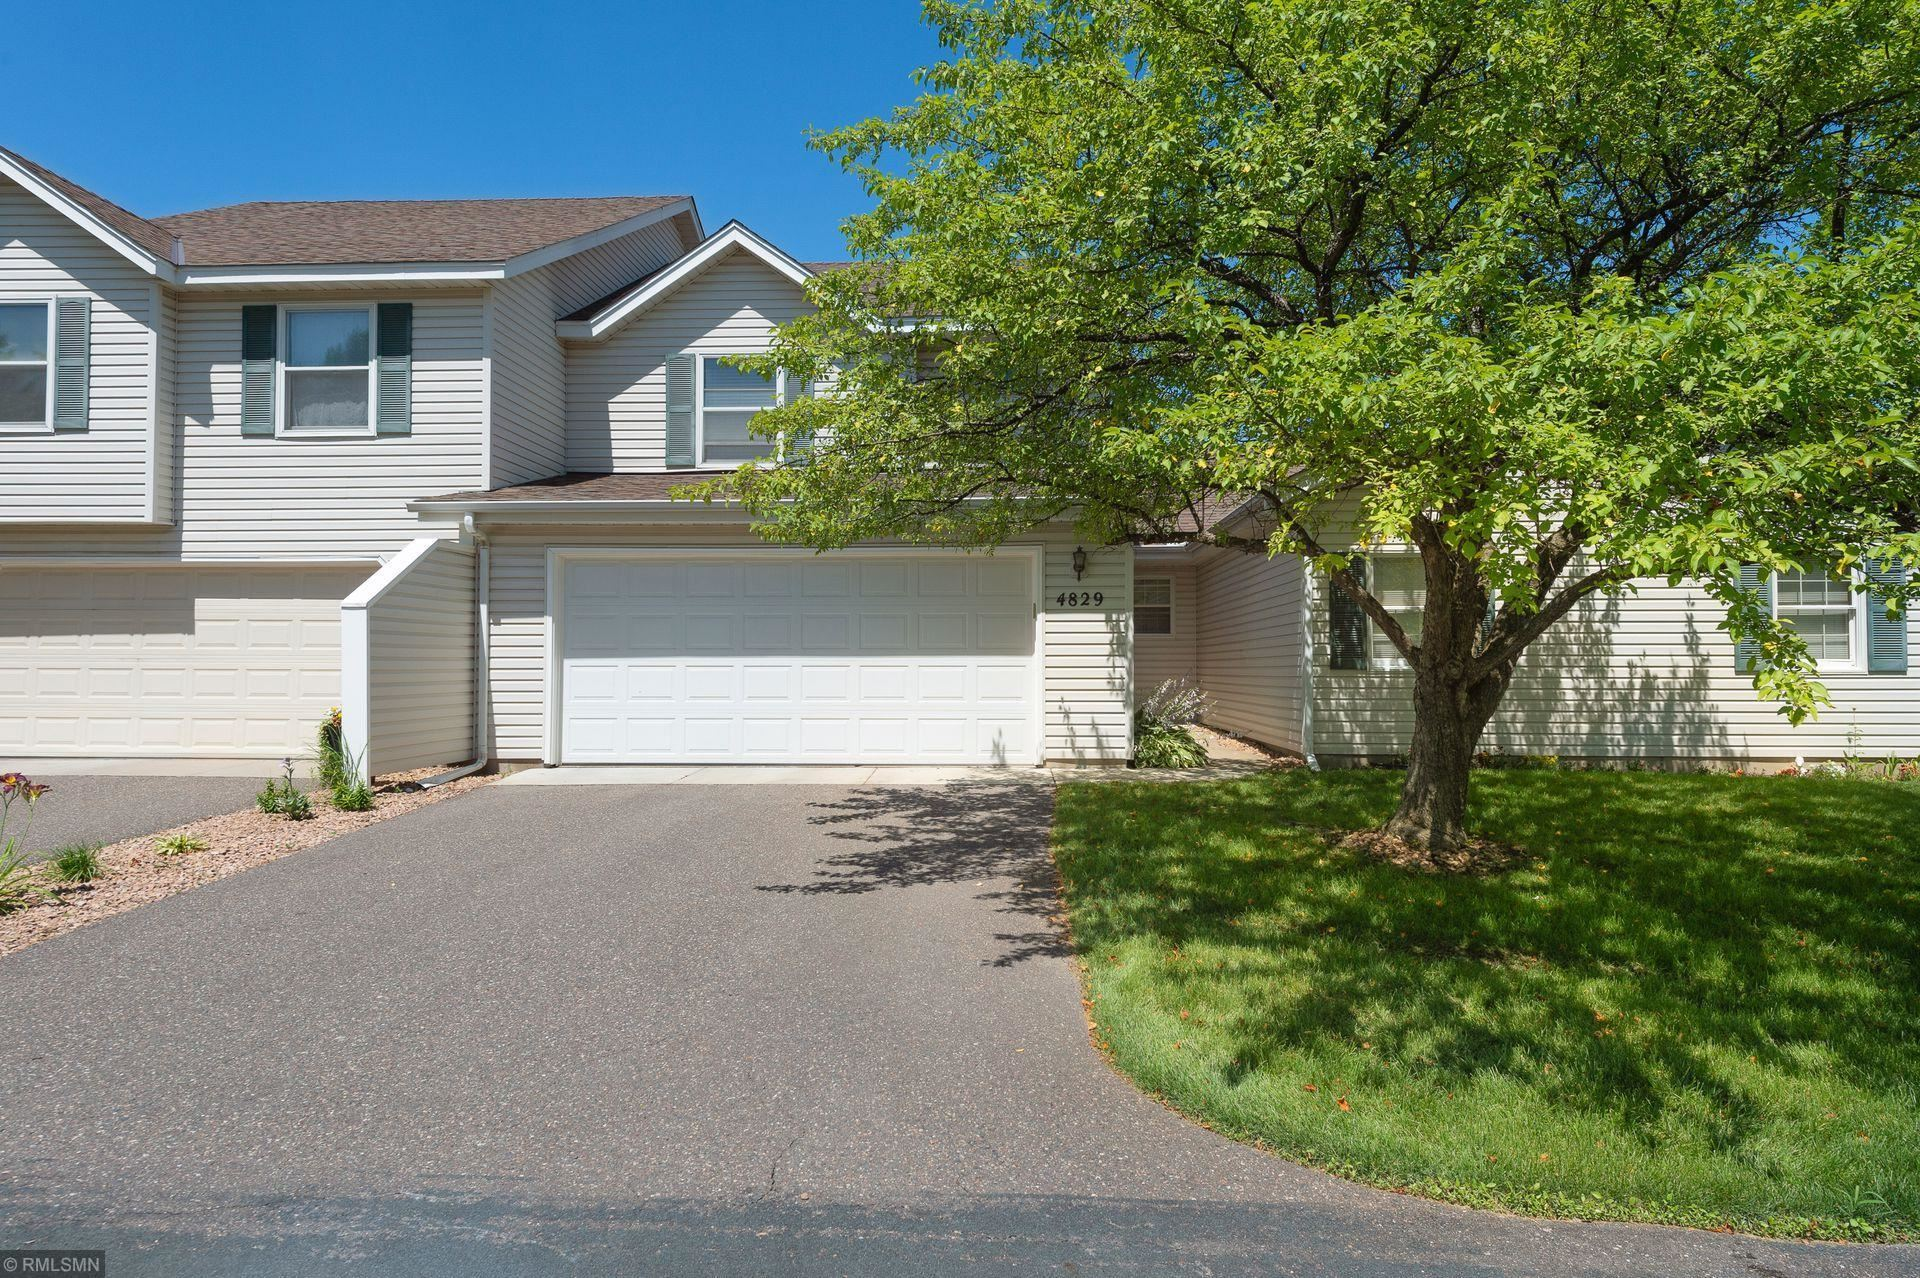 4829 Orchid Lane N, Plymouth, MN 55446 - #: 5619391